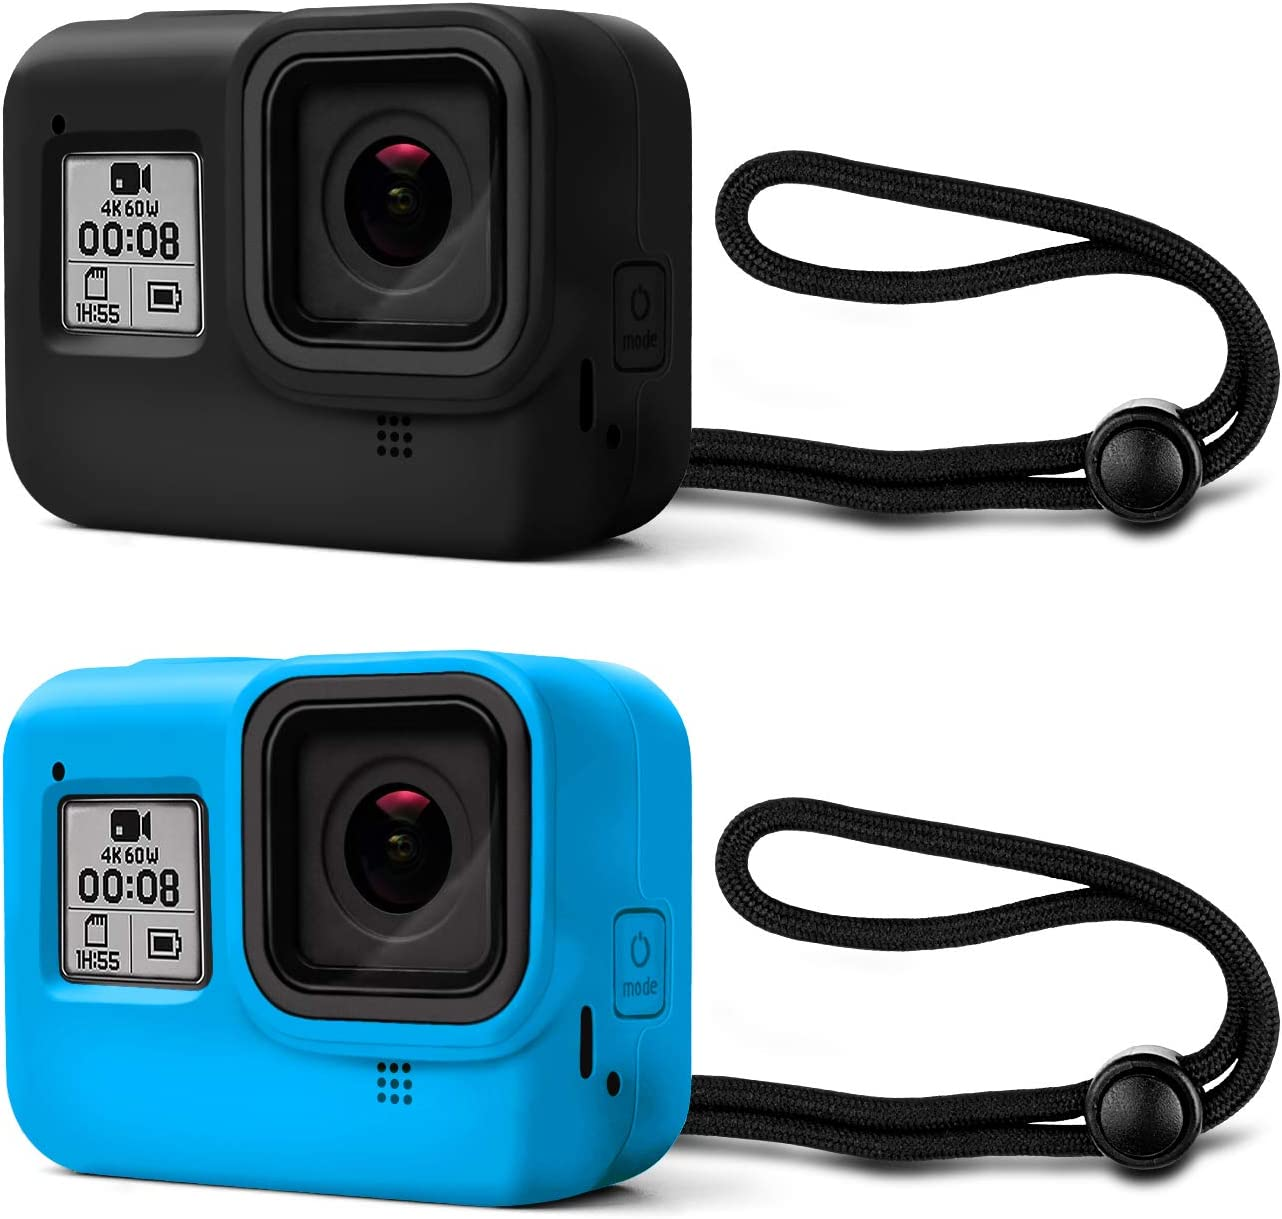 Kupton Protective Silicone Sleeve Cases + Lanyard Compatible with GoPro Hero 8